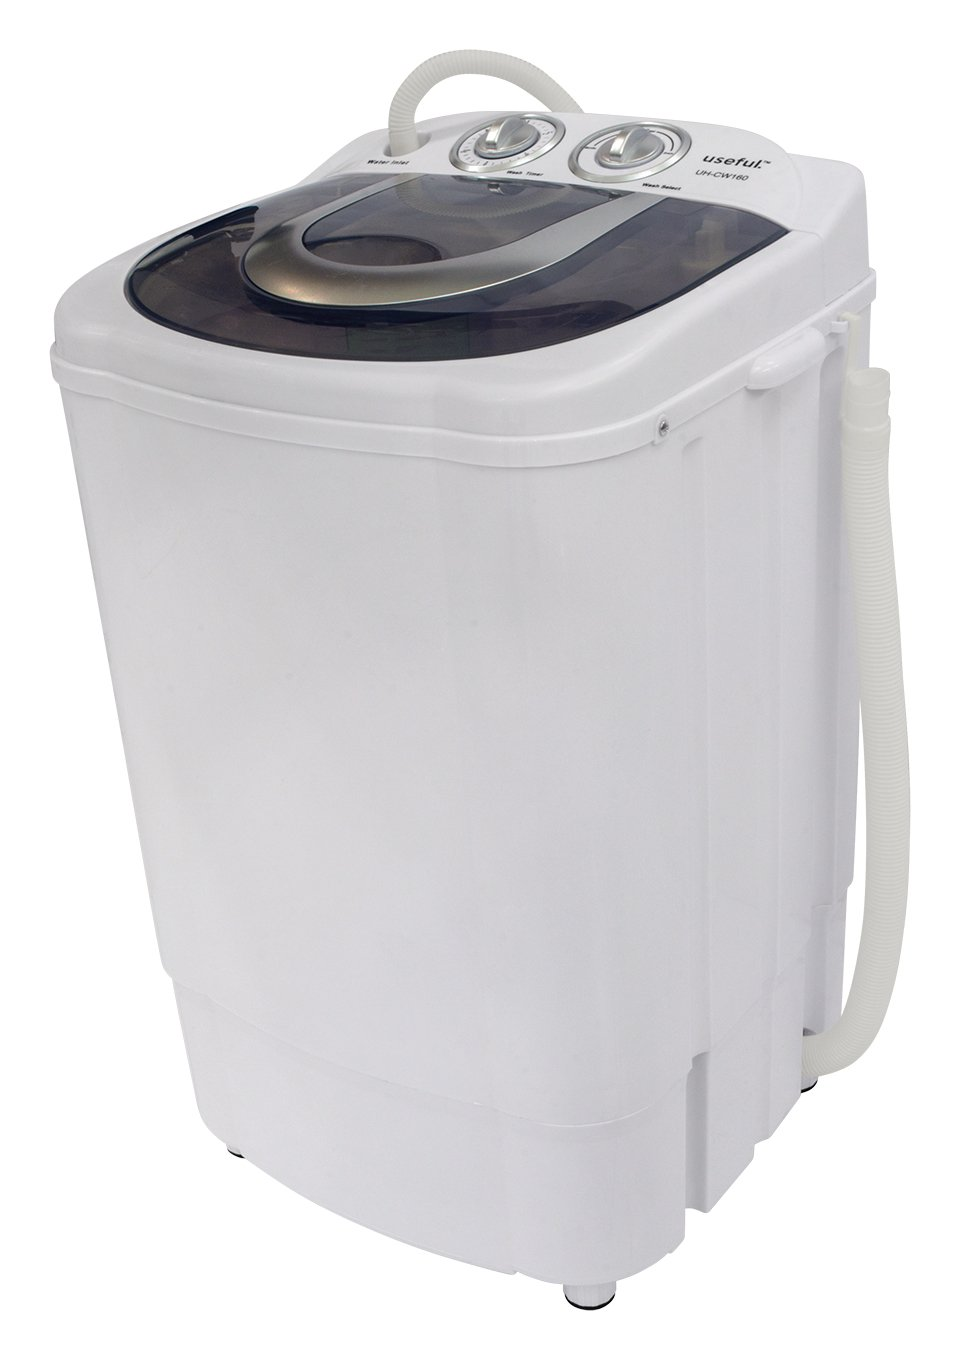 Useful UH-CW160 Automatic Electric Small Mini Portable Compact Washer Washing Machine 8.5 LB Capacity